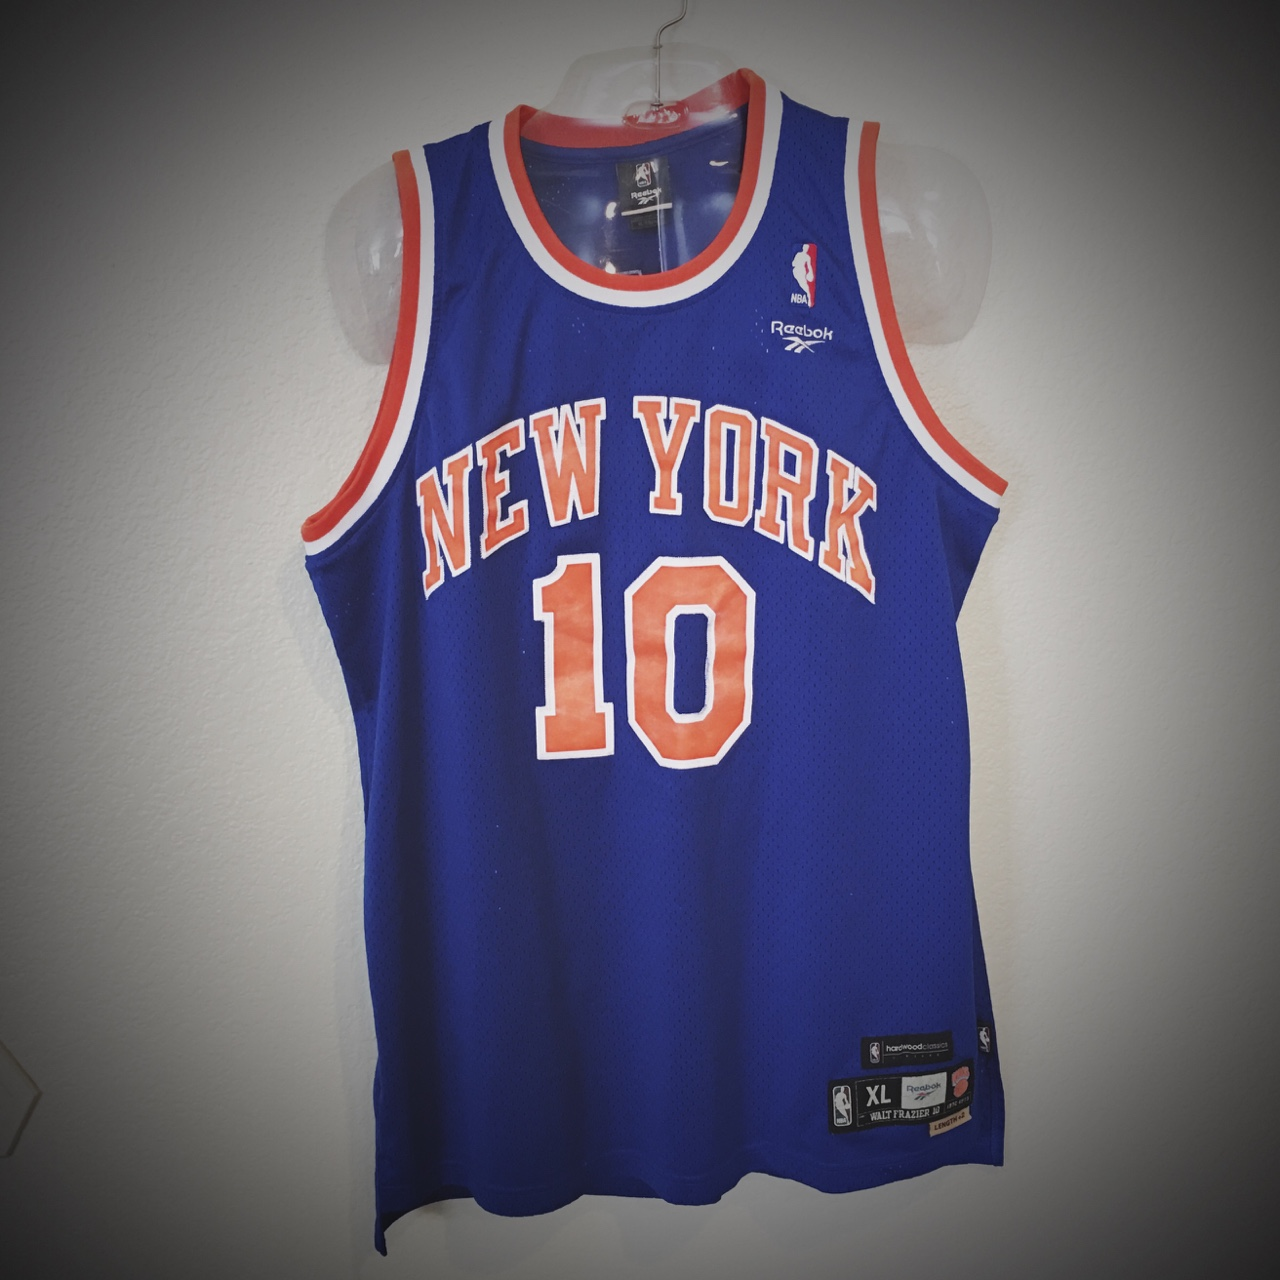 huge discount d4ff3 2bc27 New York Knicks Retro Reebok NBA Hardwood Classics ...